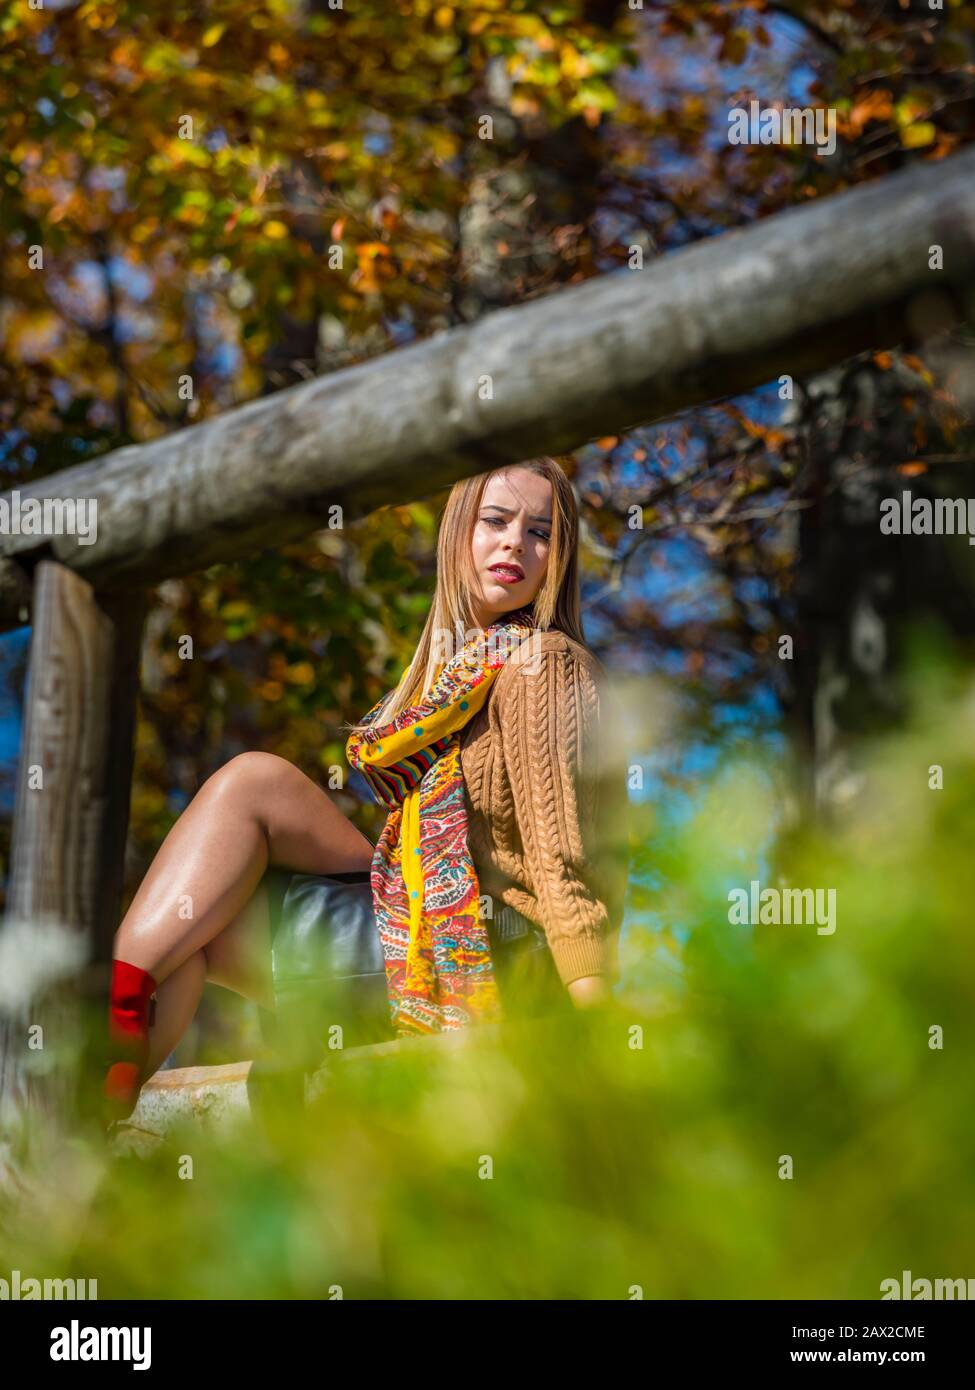 Autumn in forest teen girl isolated bellow wooden fence blurry background vegetation exposed leg legs knee knees serious looking away aside Stock Photo